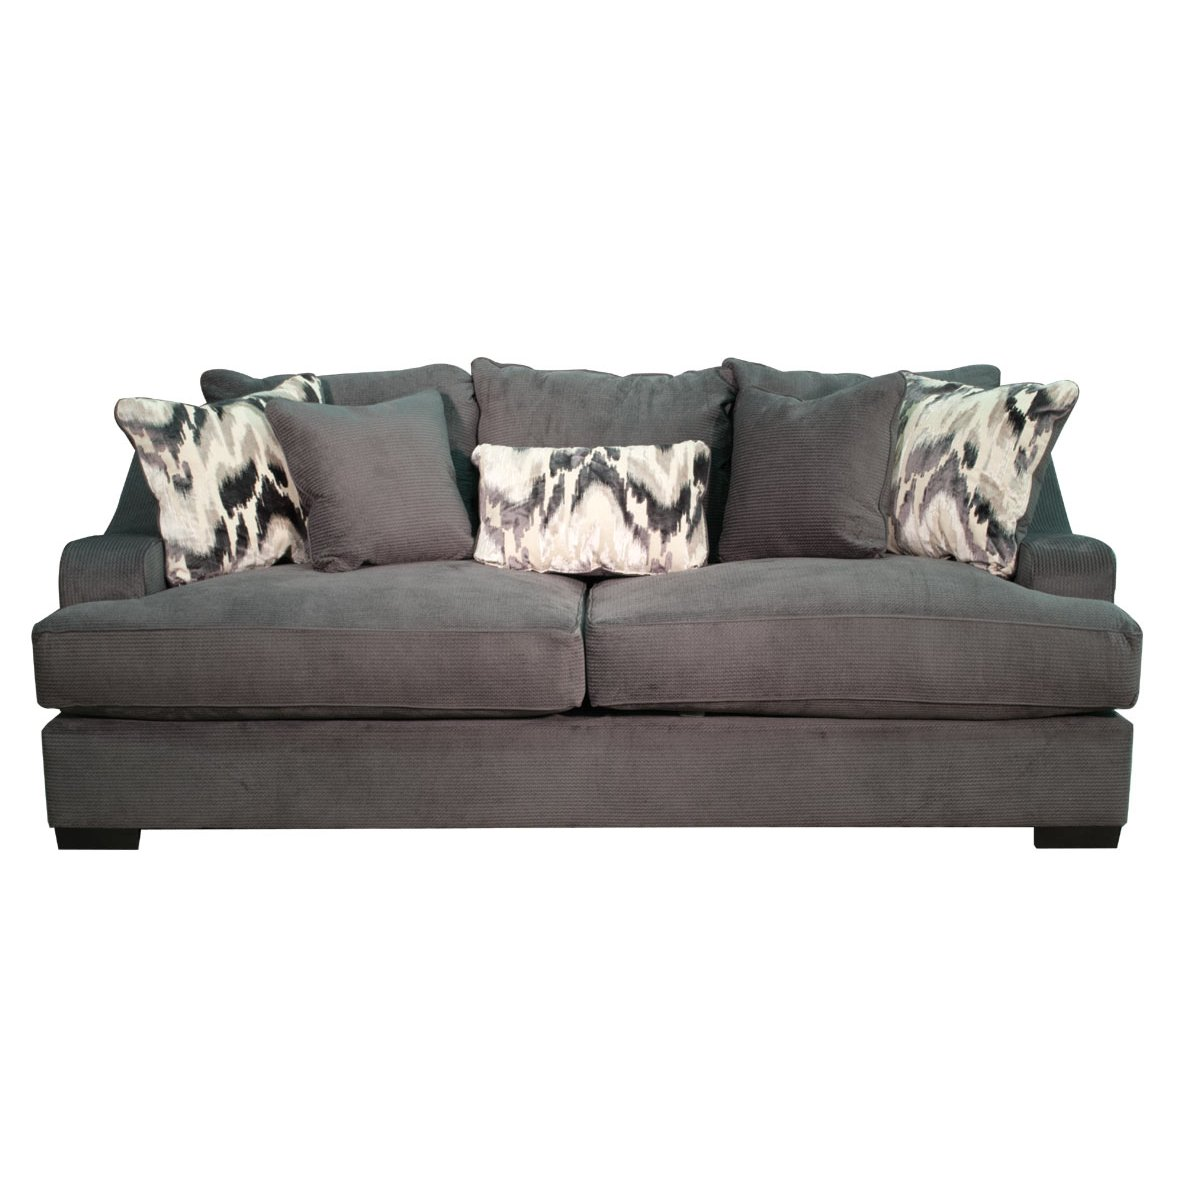 premium grey images living with sofas extraordinary black gallery also decor designs couches sofa room charming in furniture couch